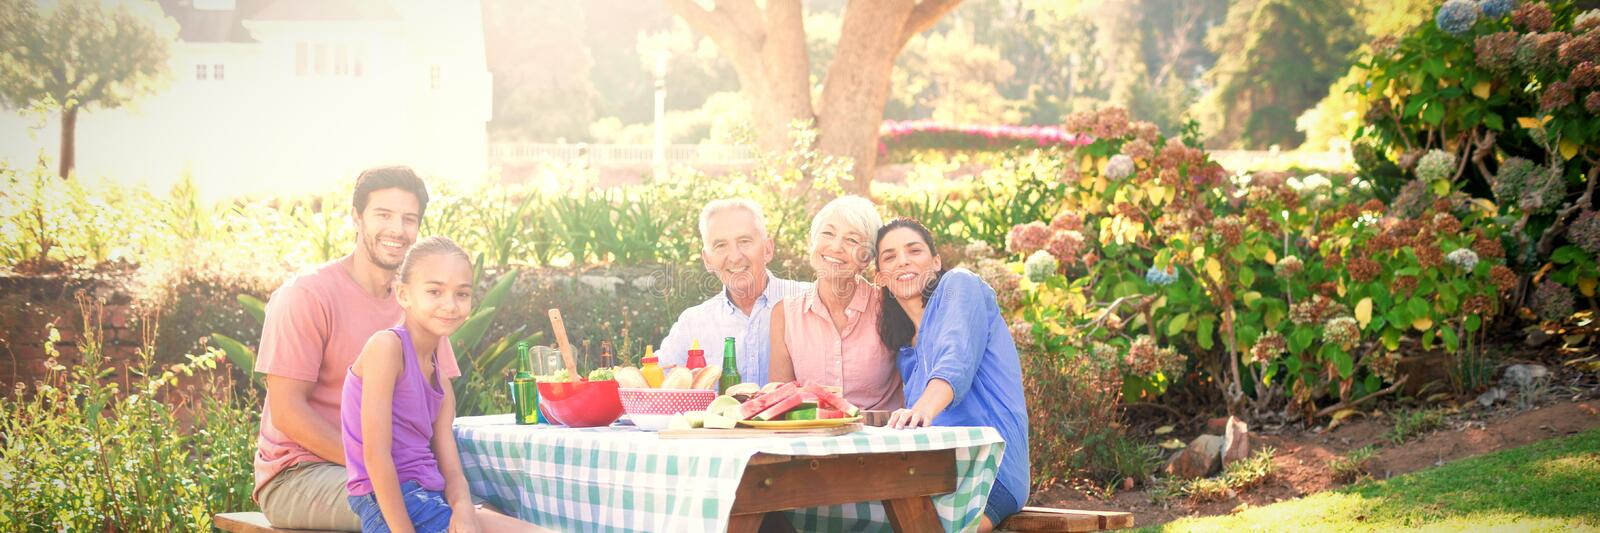 Happy family having barbecue in the park stock photos